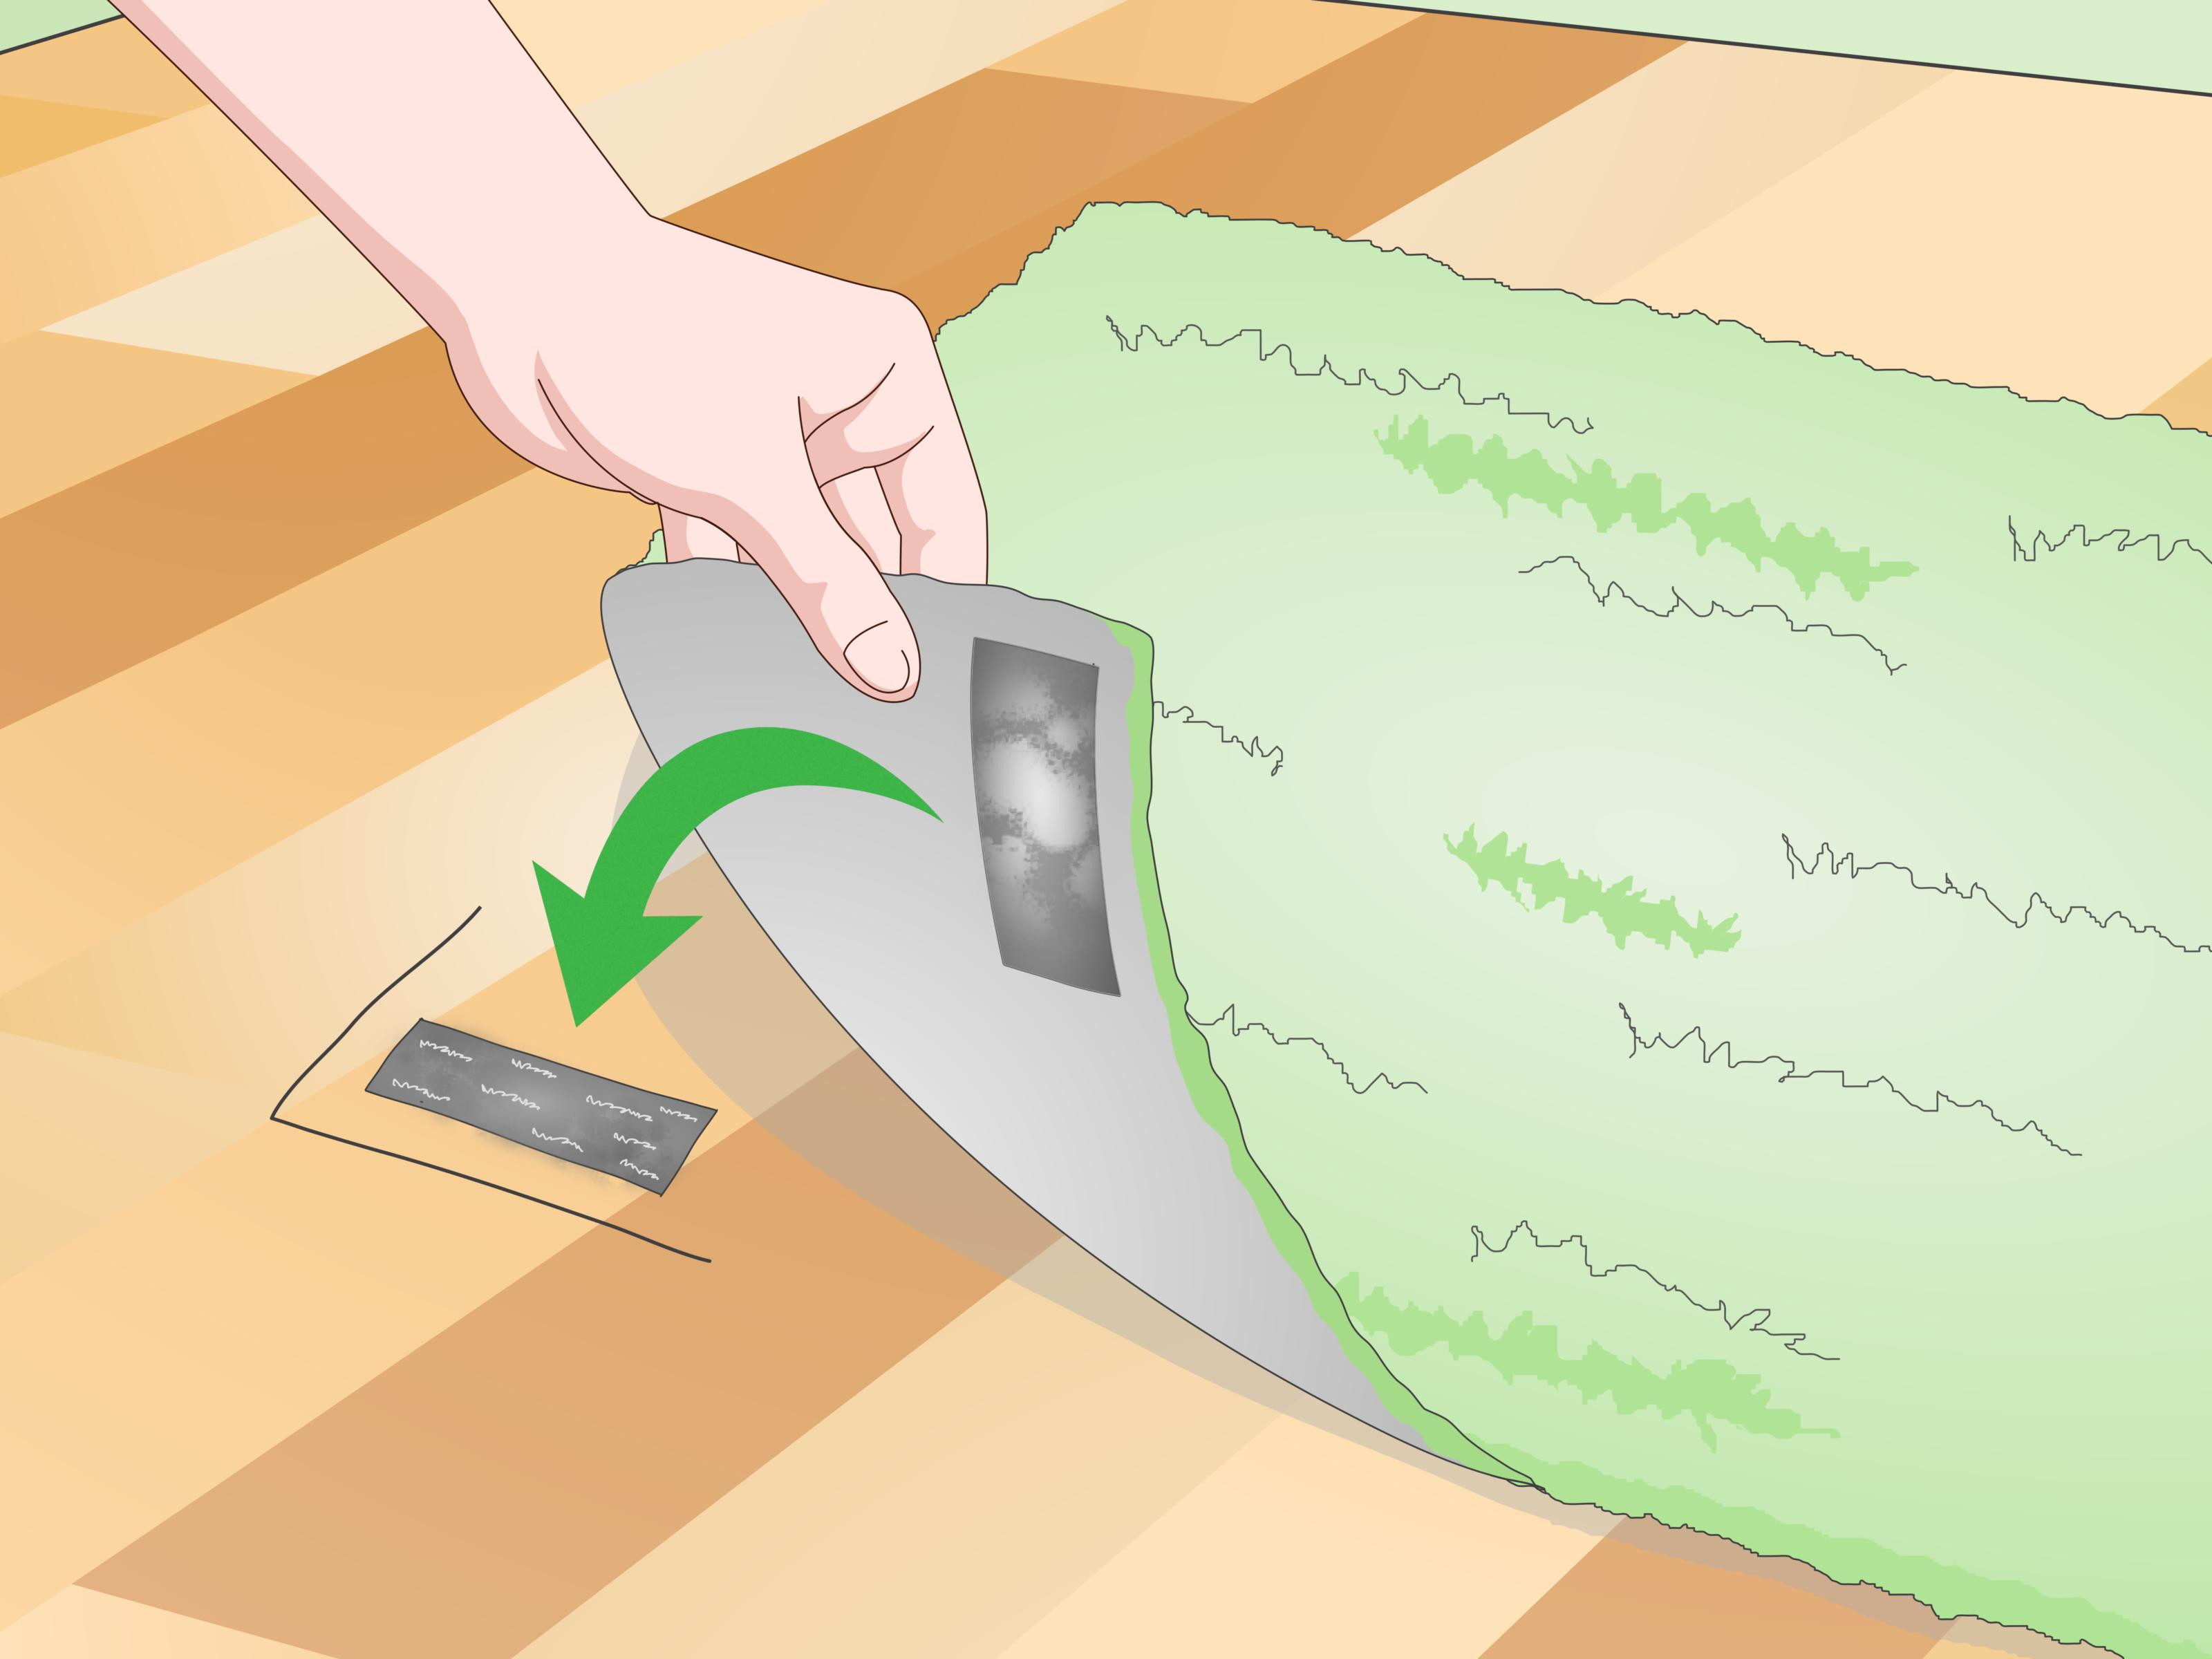 living room rug on hardwood floor of 3 ways to stop a rug from moving on a wooden floor wikihow throughout stop a rug from moving on a wooden floor step 18